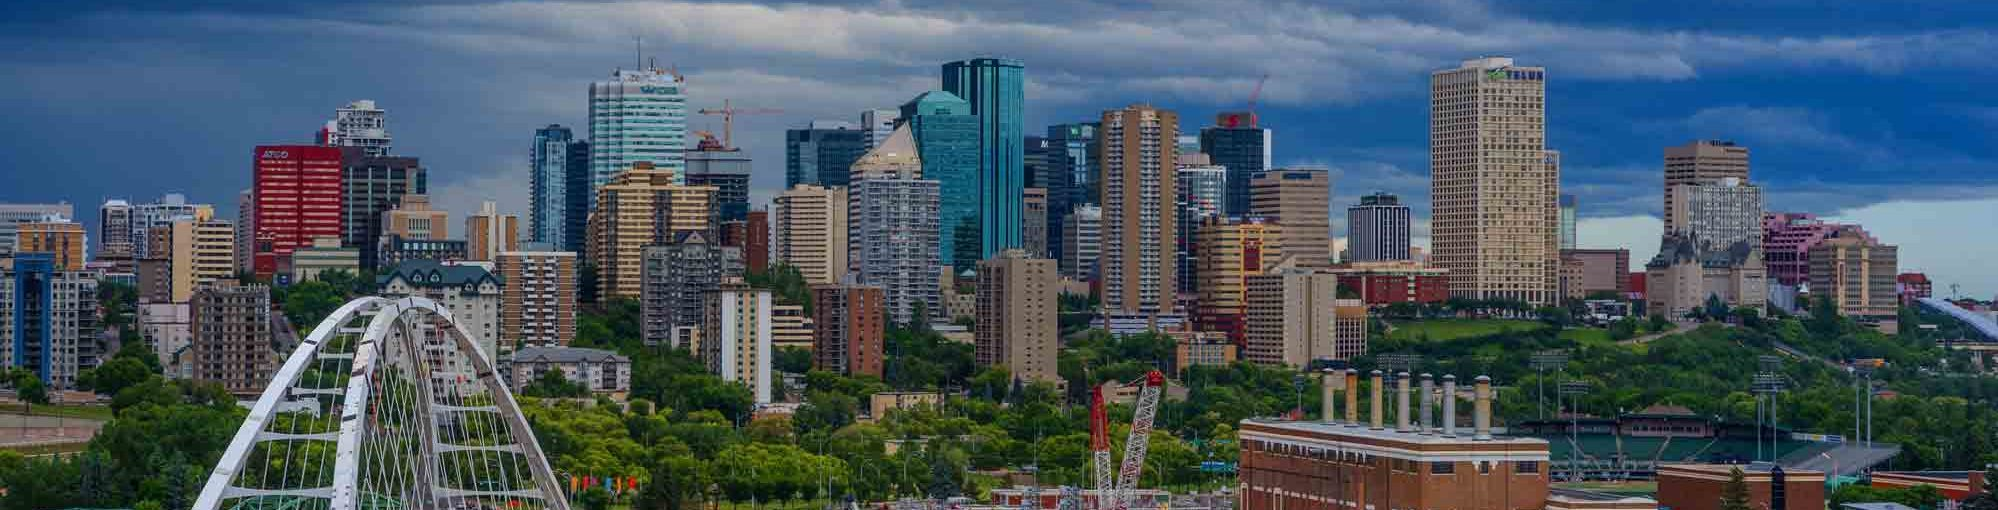 Edmonton Skyline - photo by Kurt Bauschardt (https://www.flickr.com/photos/kurt-b/)